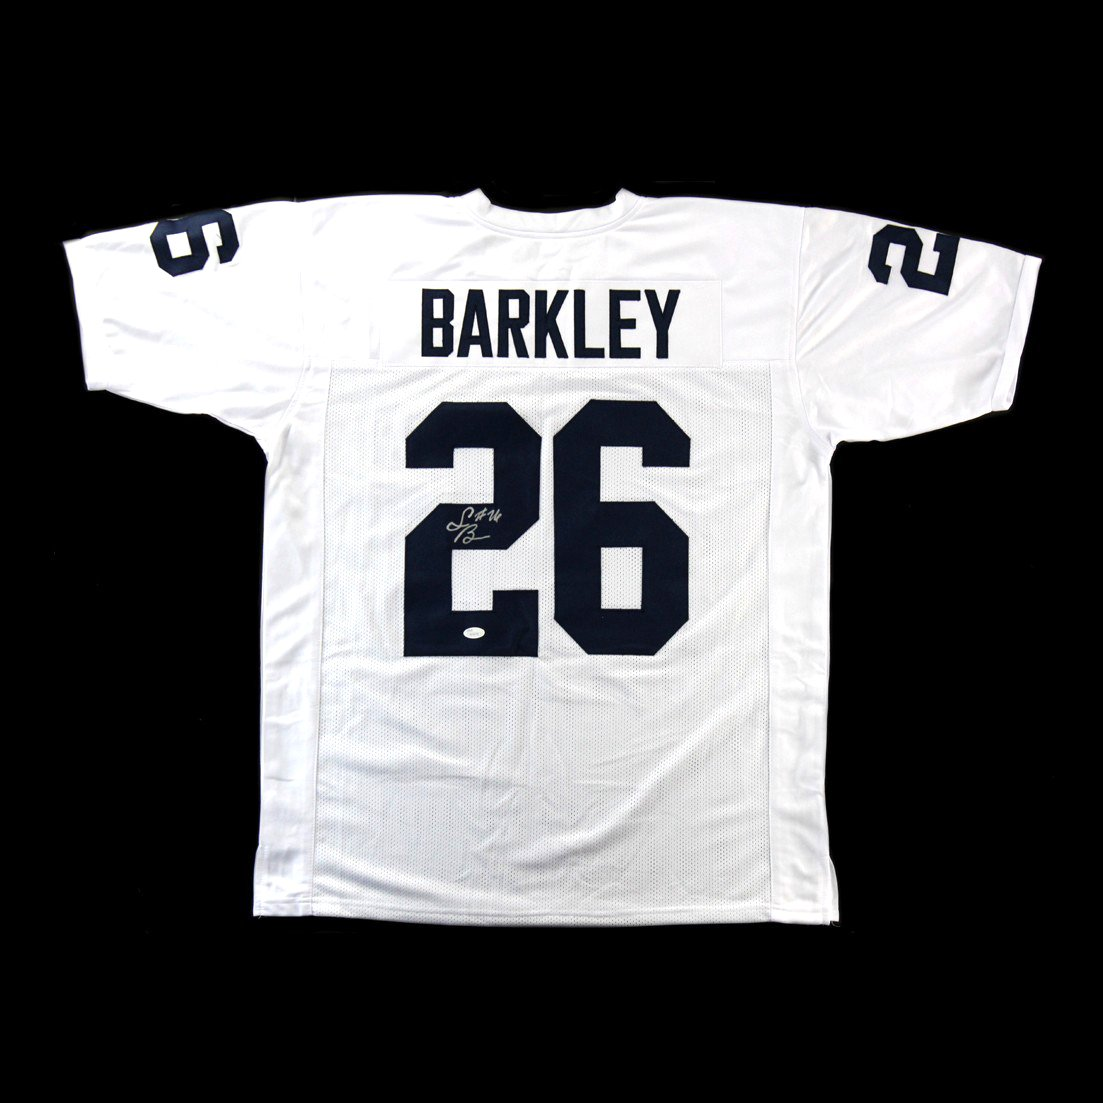 on sale 4693f 18e7d Saquon Barkley Autographed/Signed Penn State Custom White ...